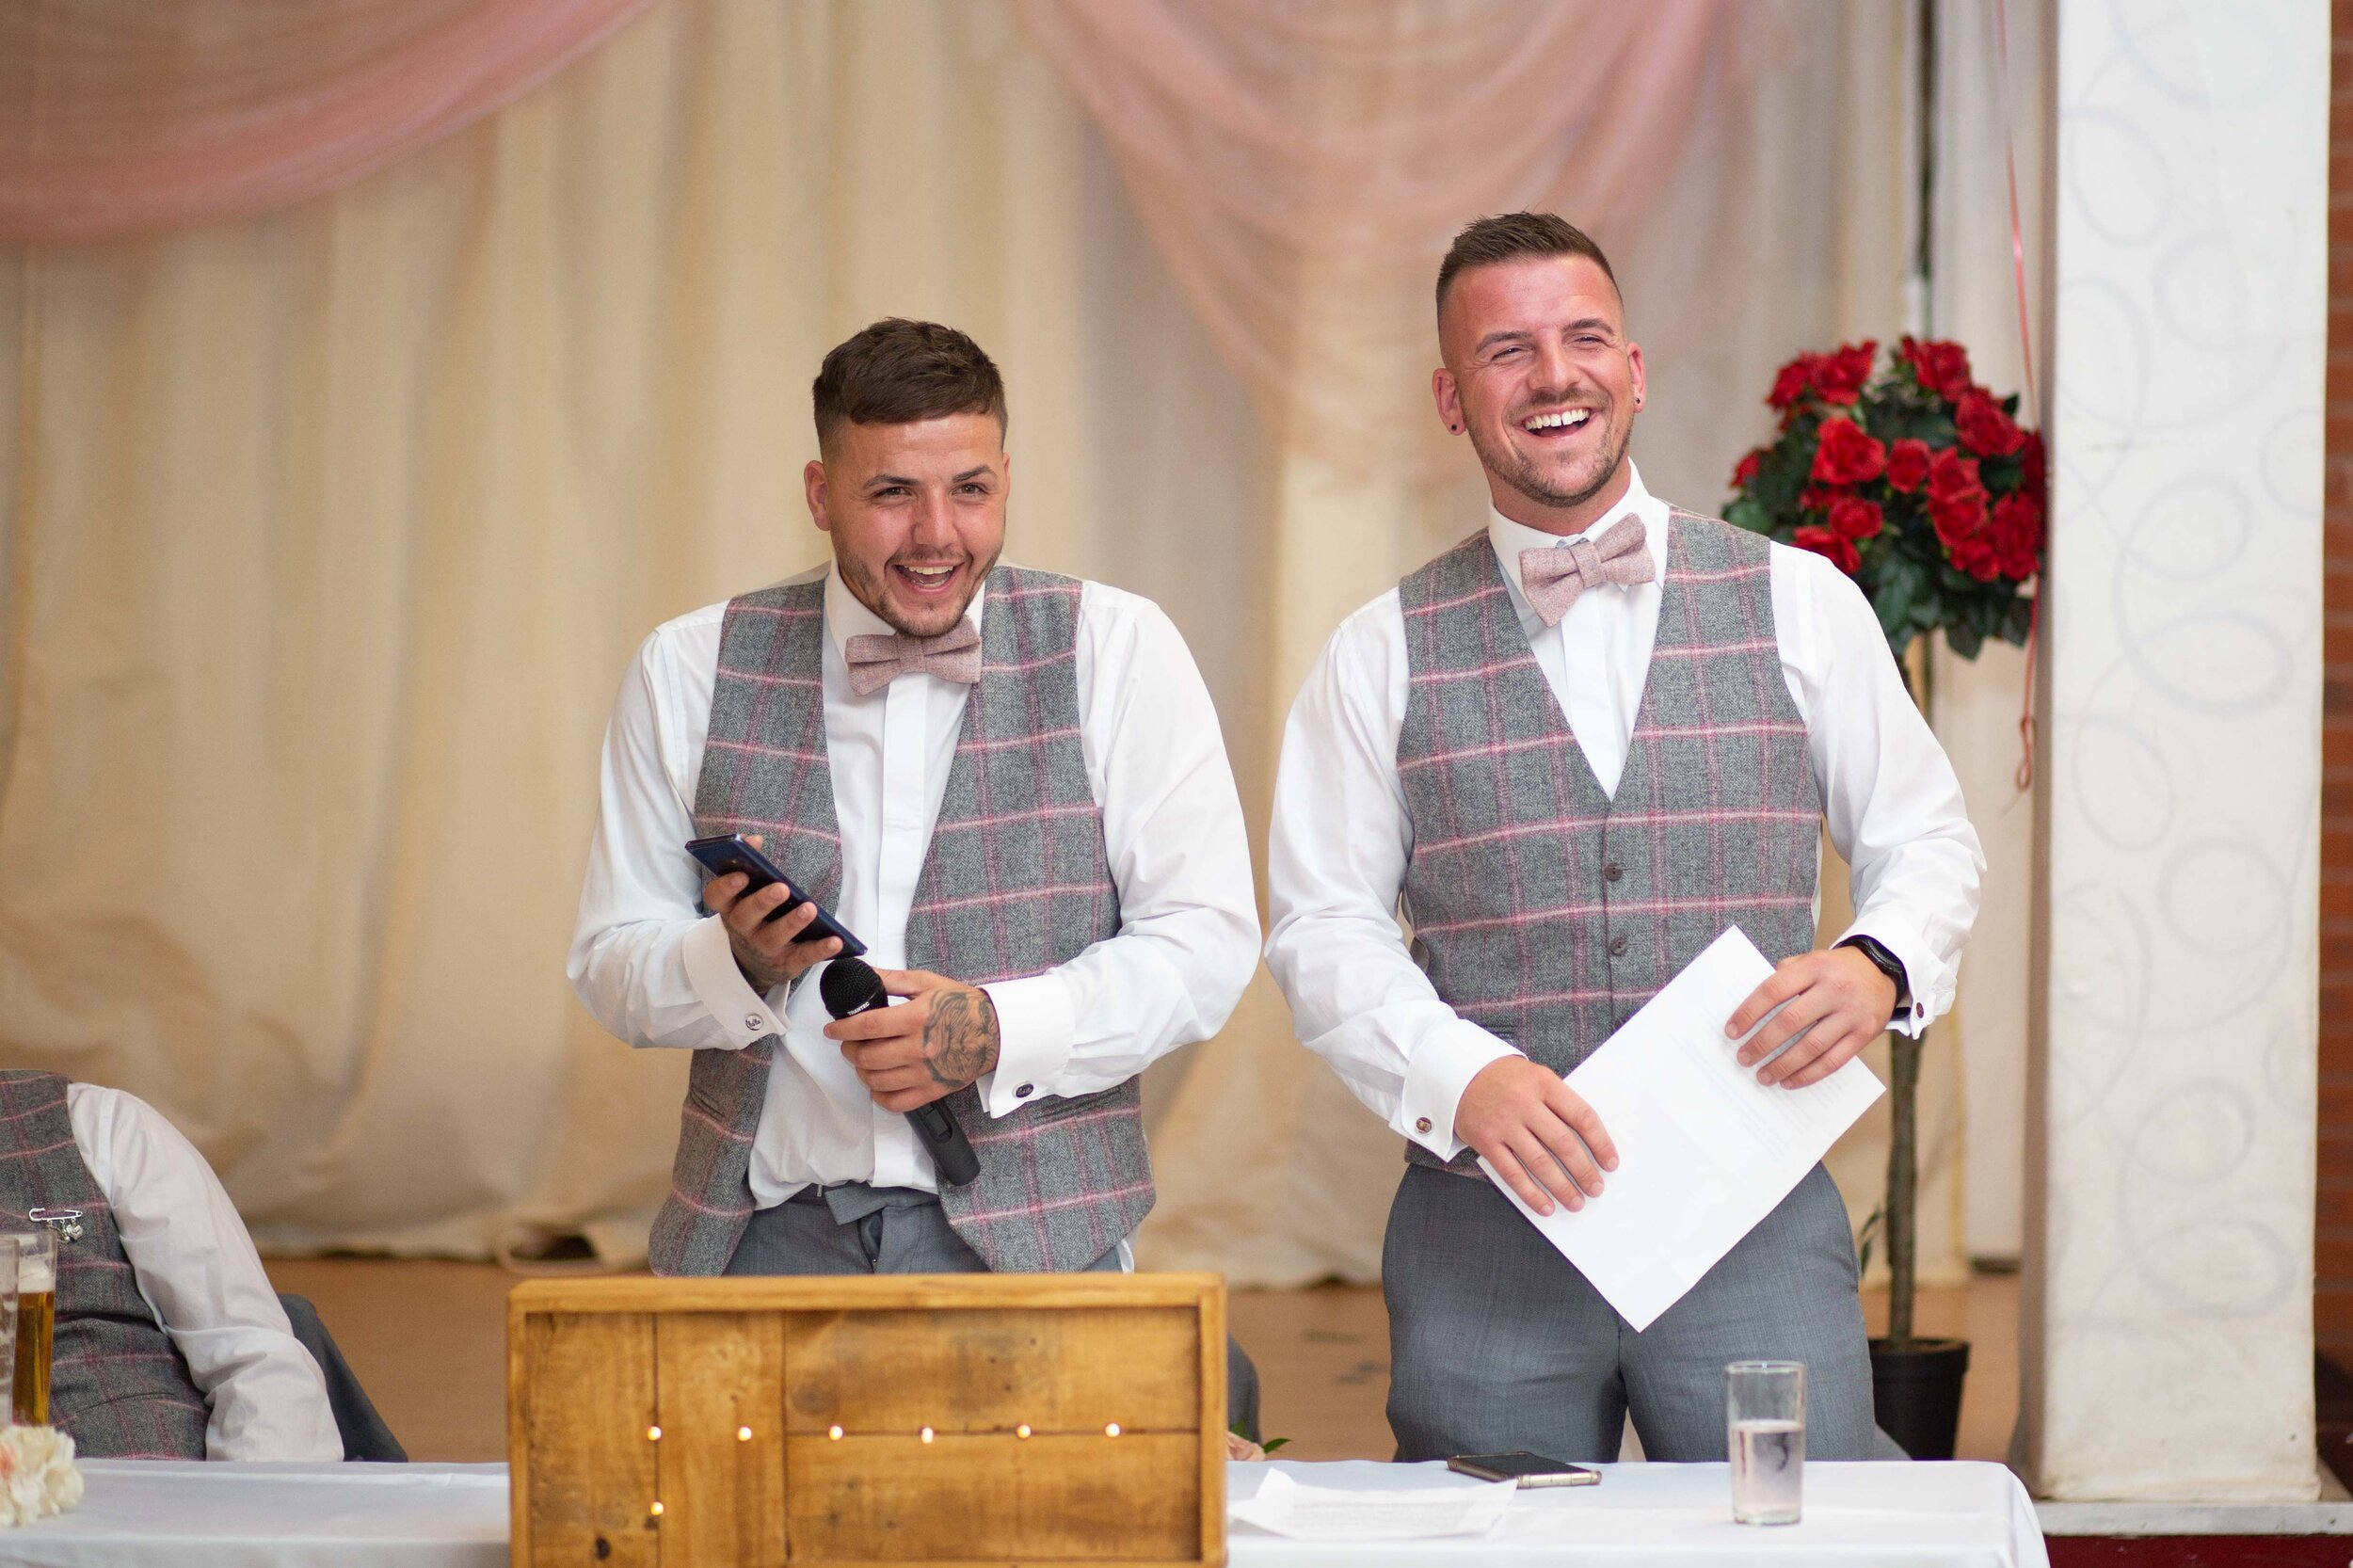 Lea Cooper photography - wedding photography - st Lawrence church dalaston West Midlands Willenhall Wednesday wedding photographer Brookfields club house cannock road - 31.JPG